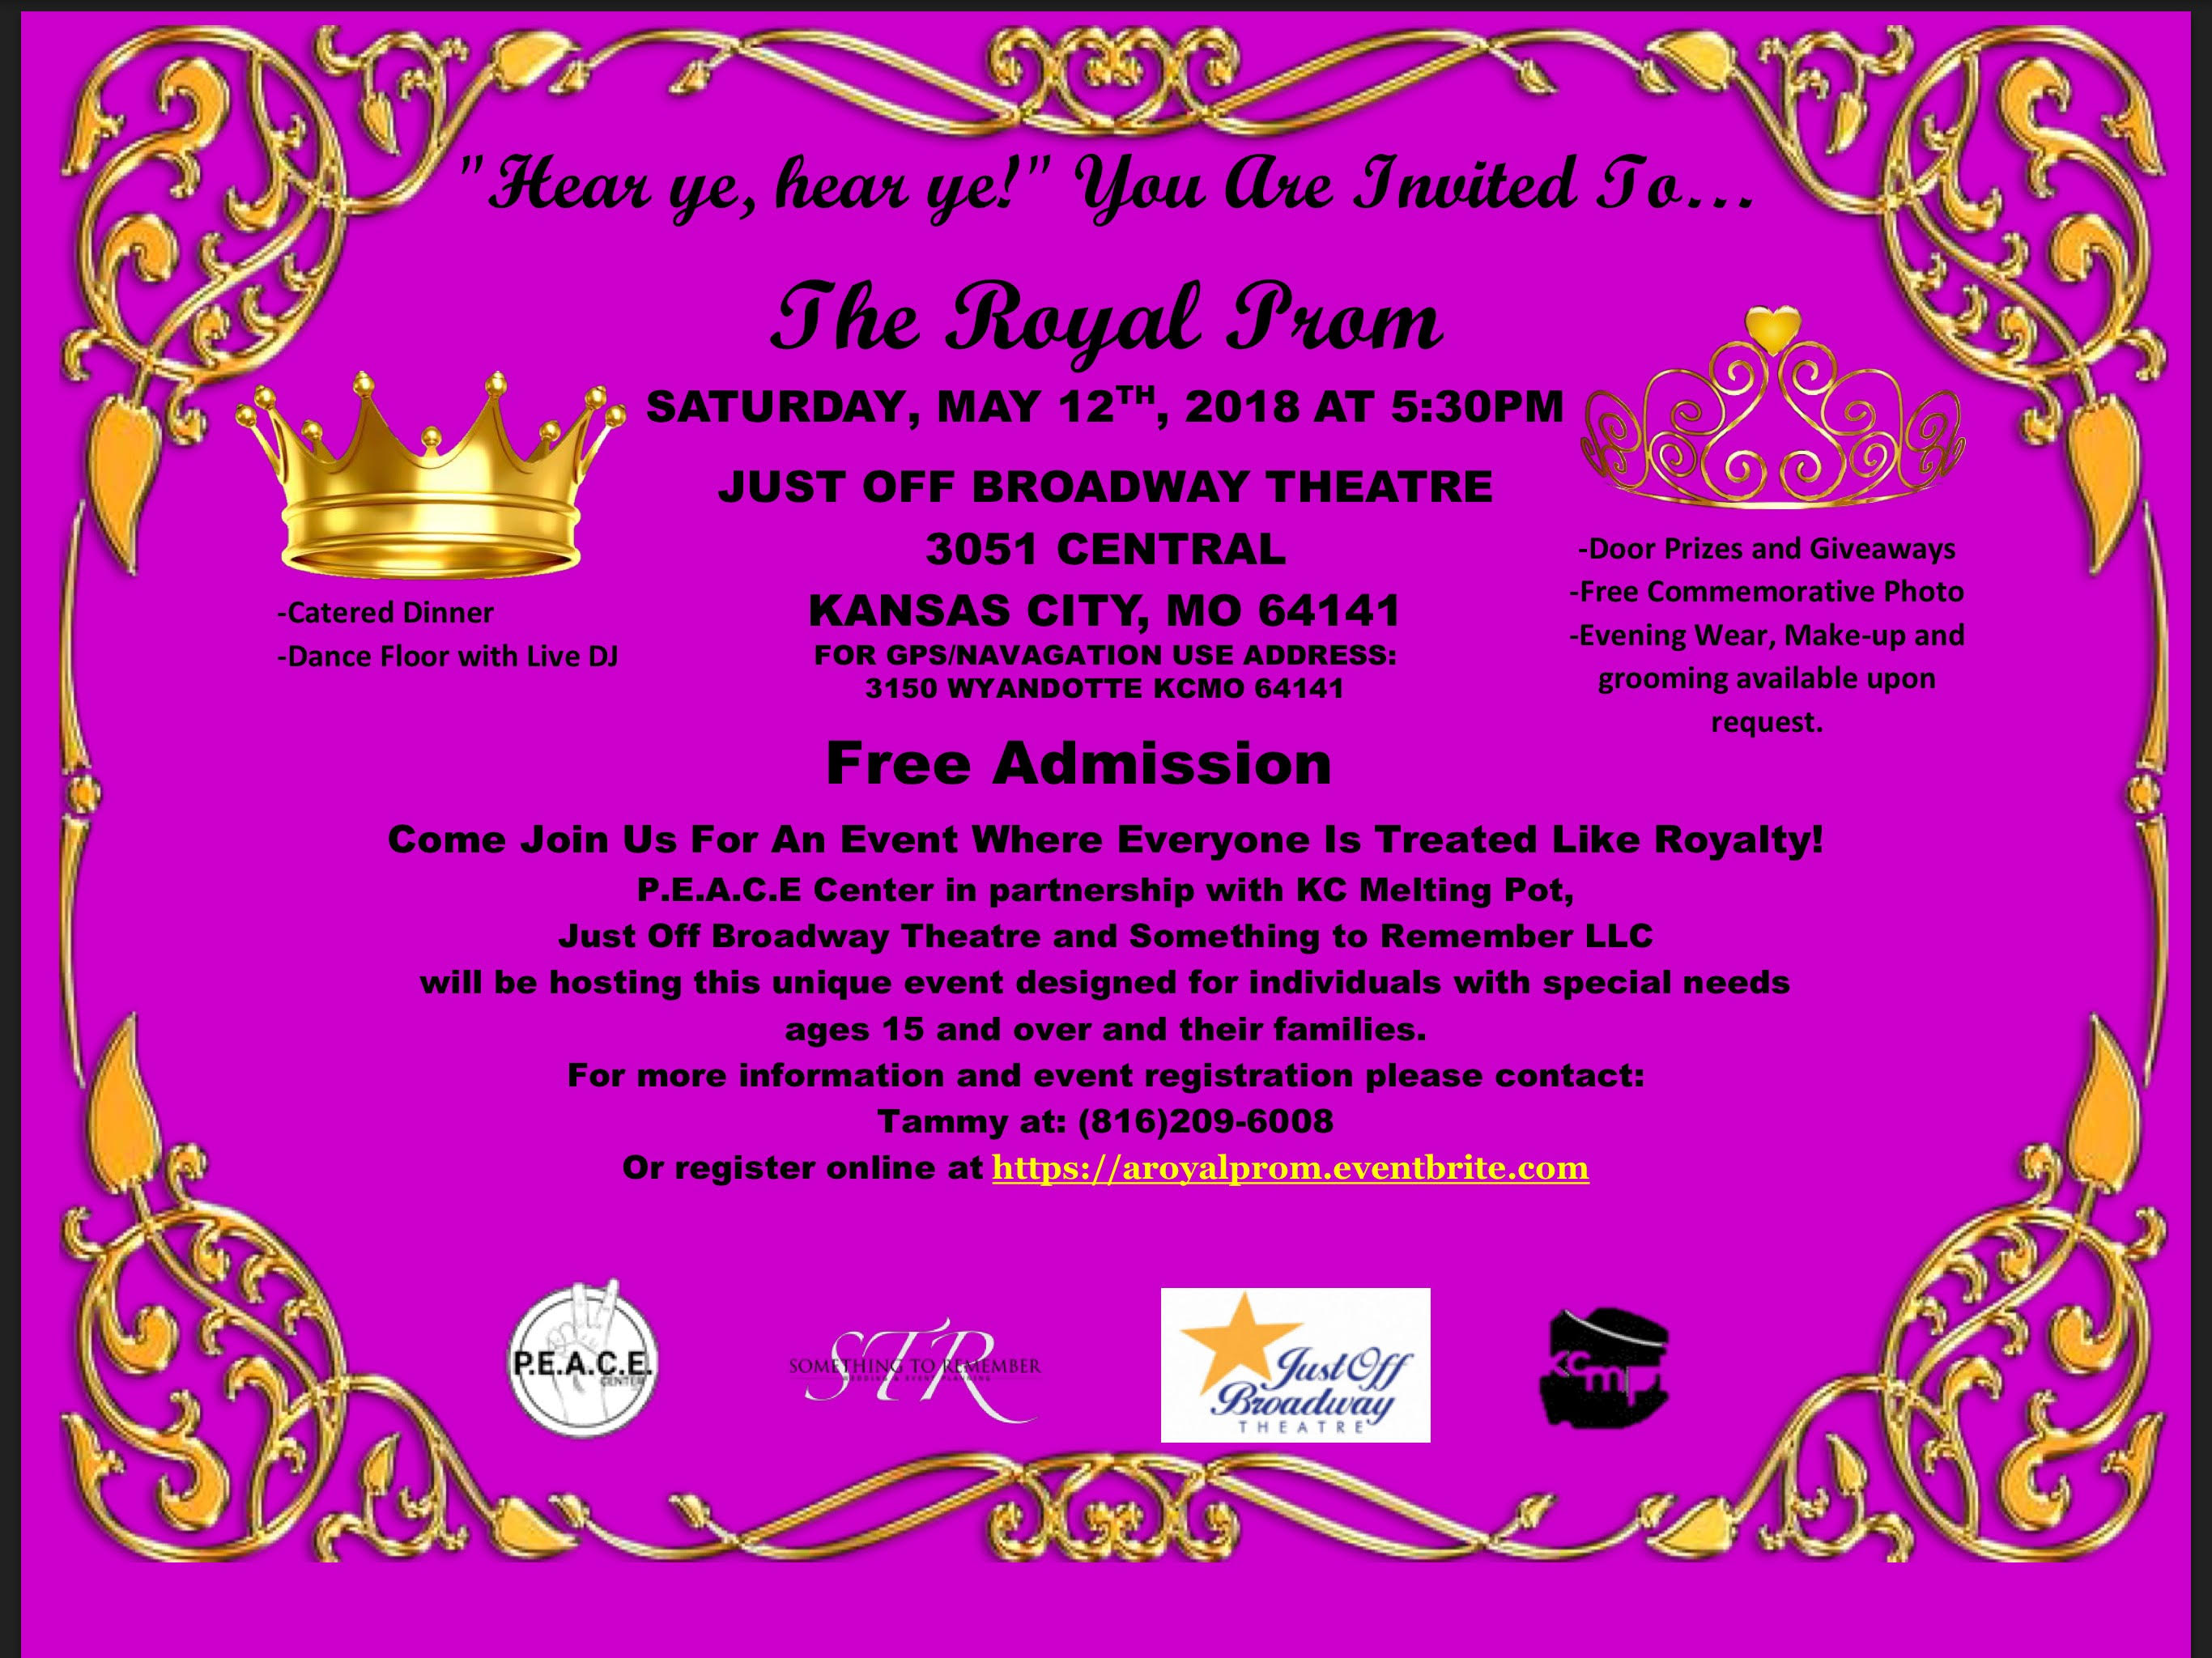 A Royal Prom